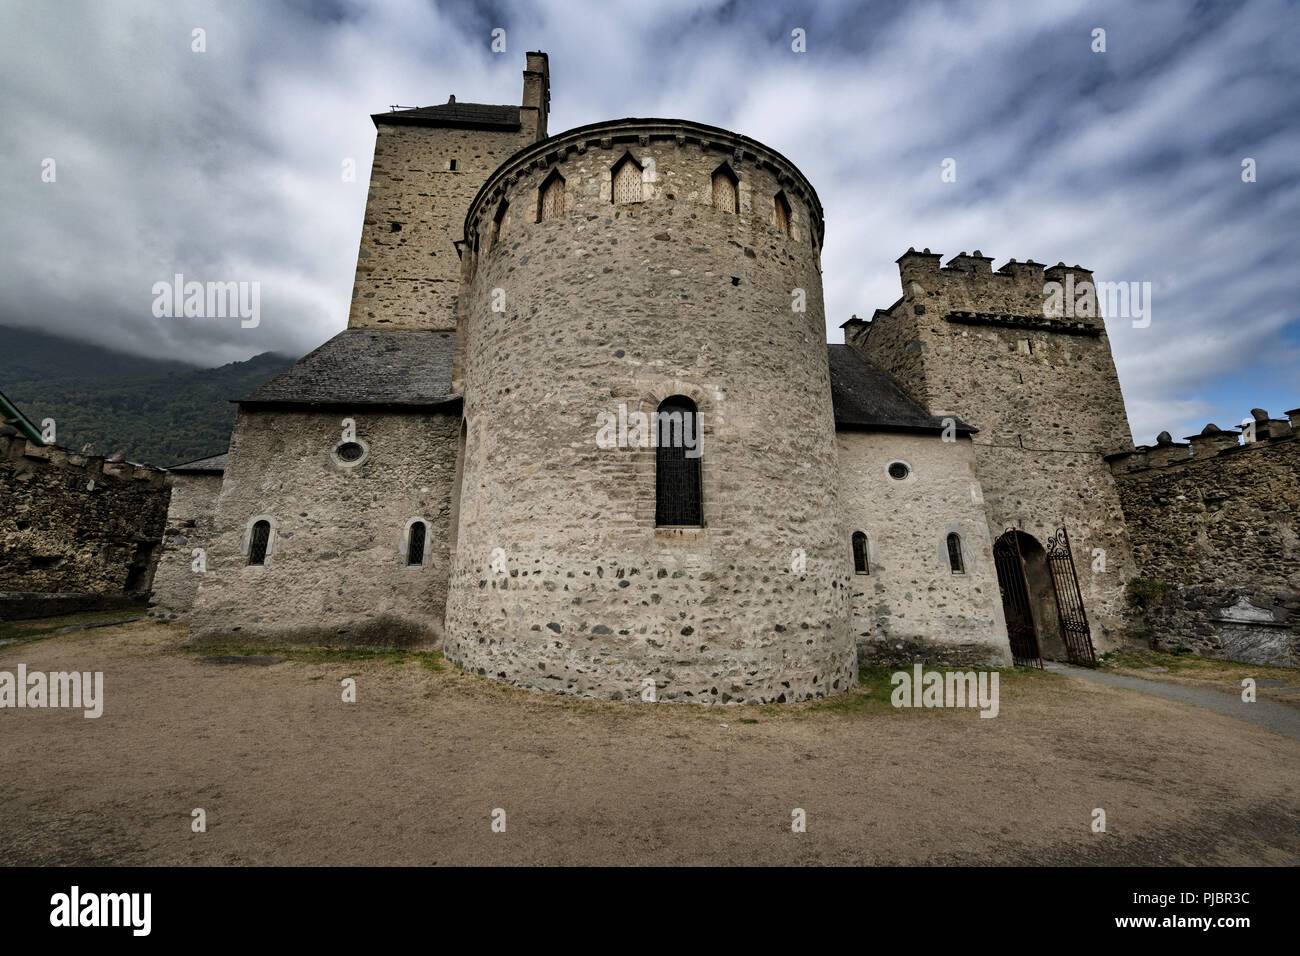 Fortified medieval church of the Templars situated in the french Pyrénées mountains, it's graveyard containing Knights of the Templars. Stock Photo